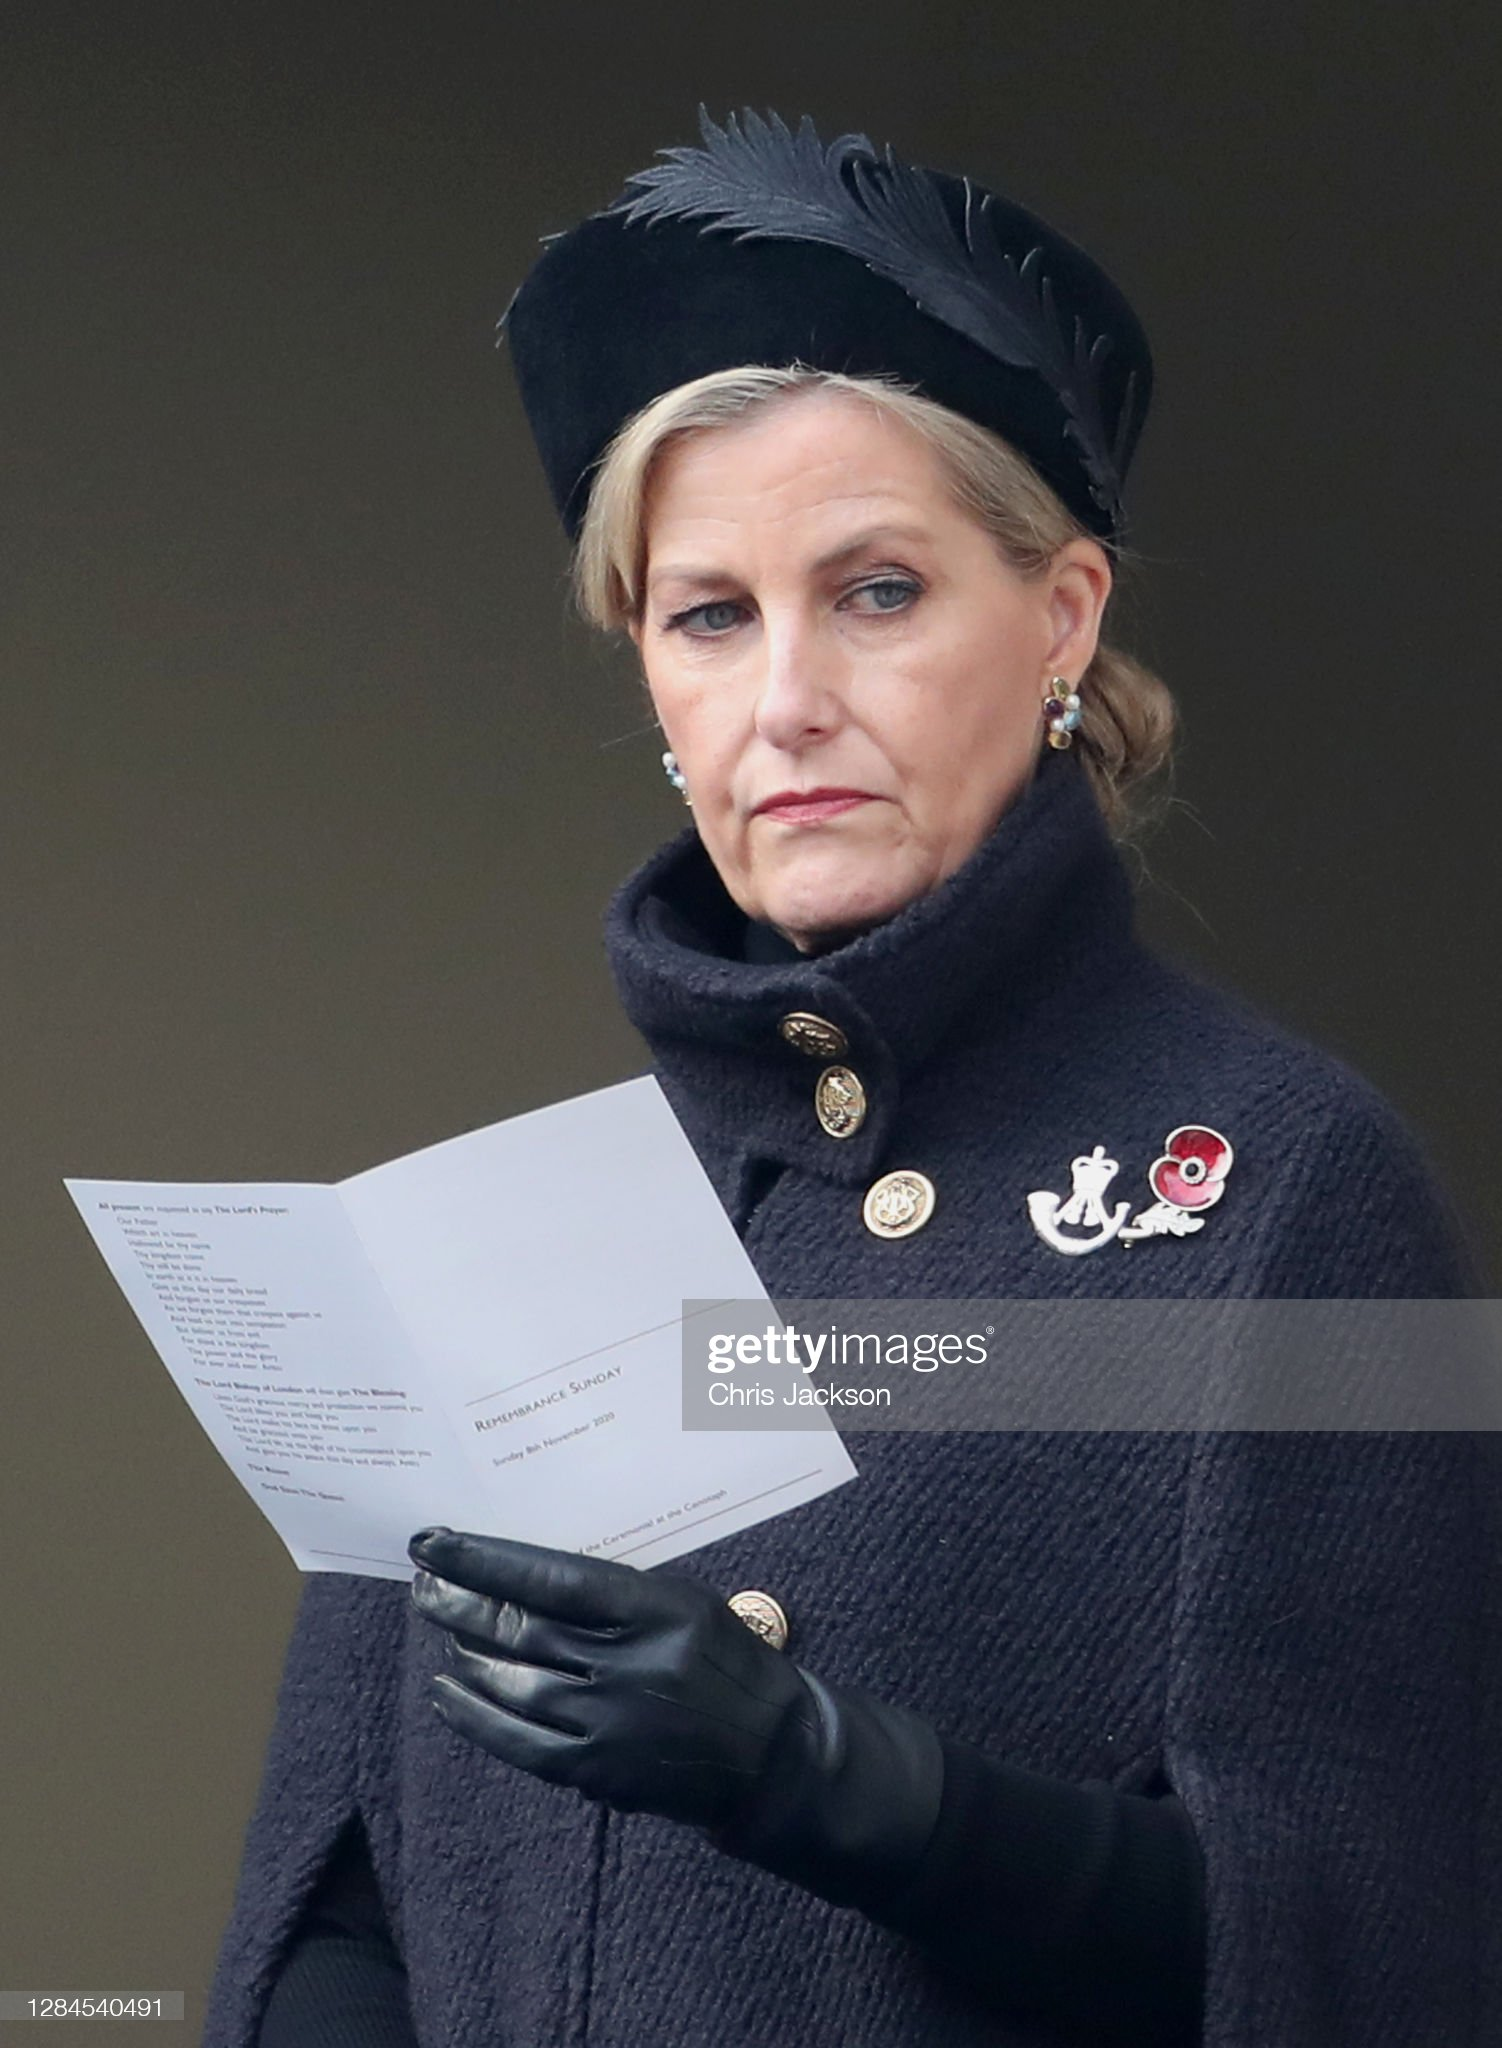 https://media.gettyimages.com/photos/sophie-countess-of-wessex-during-the-national-service-of-remembrance-picture-id1284540491?s=2048x2048